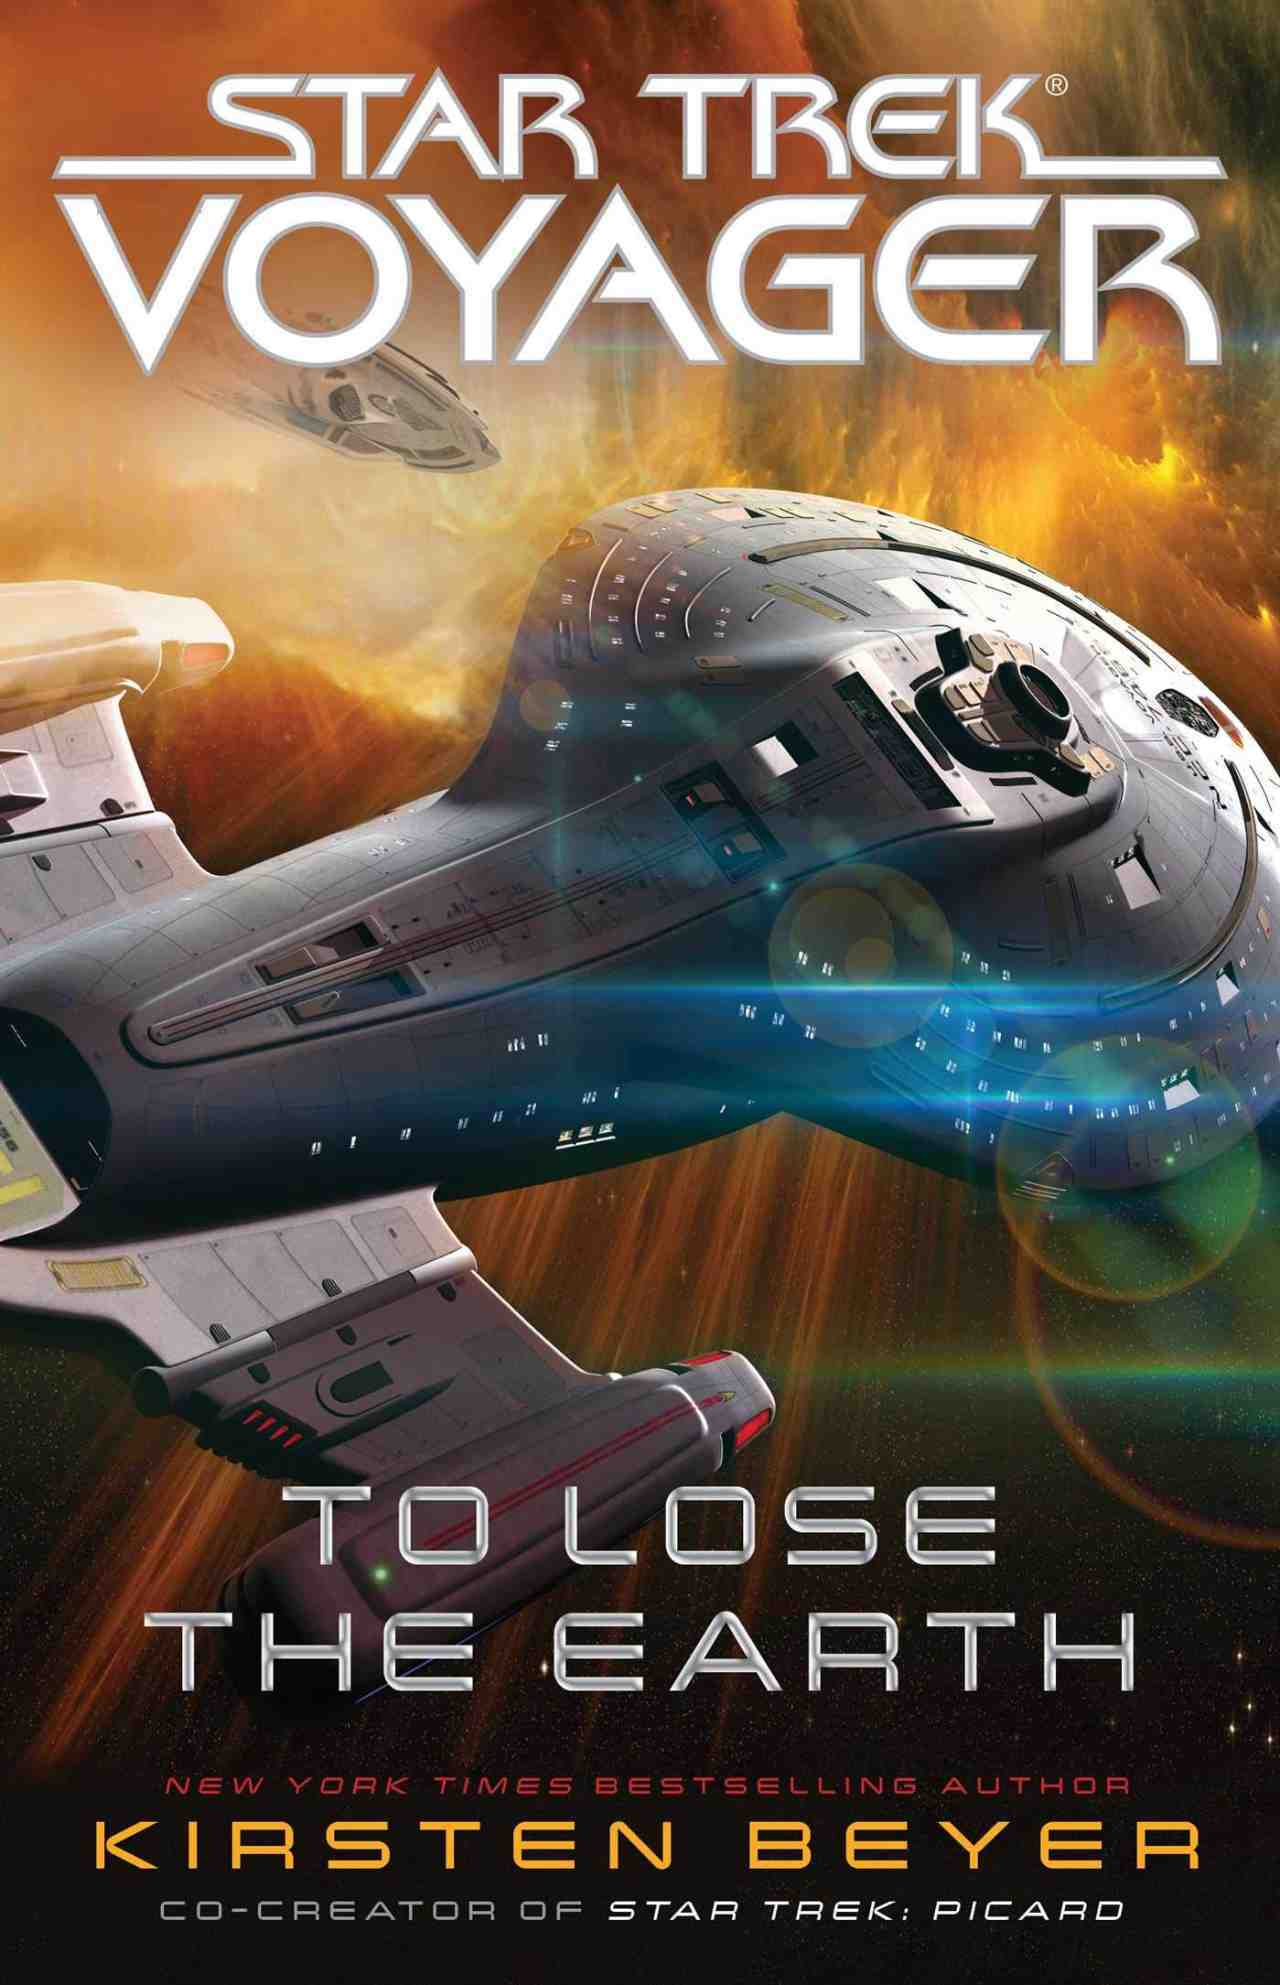 Star Trek voyager to lose the earth cover